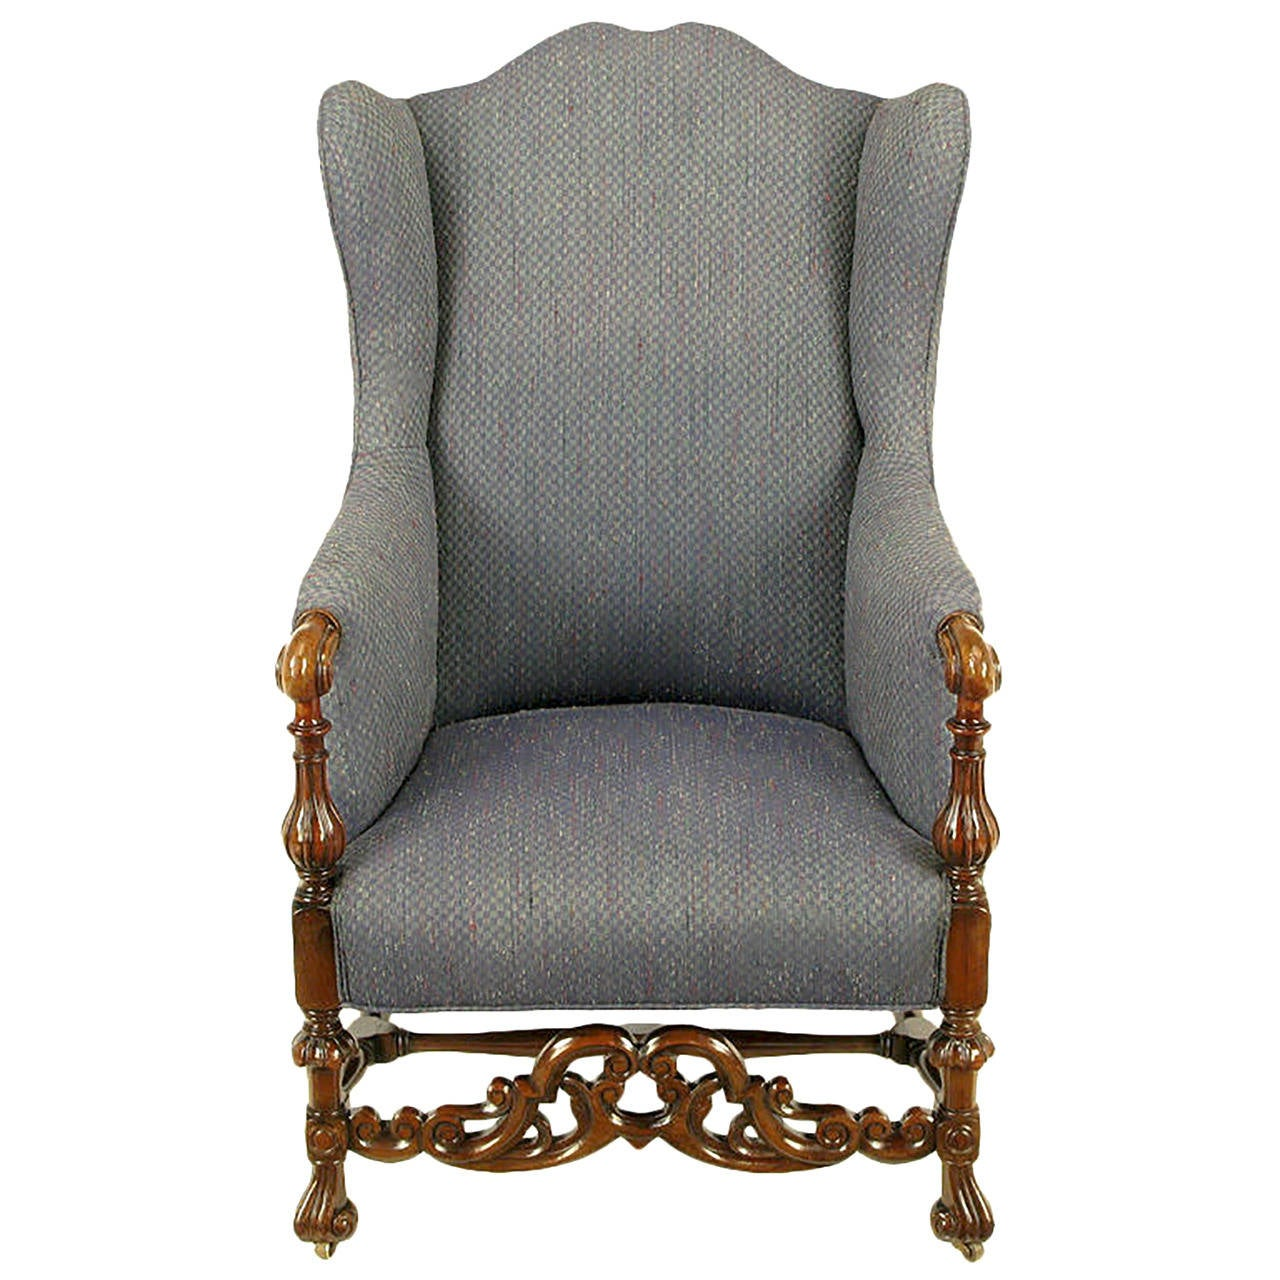 Delicieux Italian Regency Upholstered Wing Chair With Carved Wood Frame